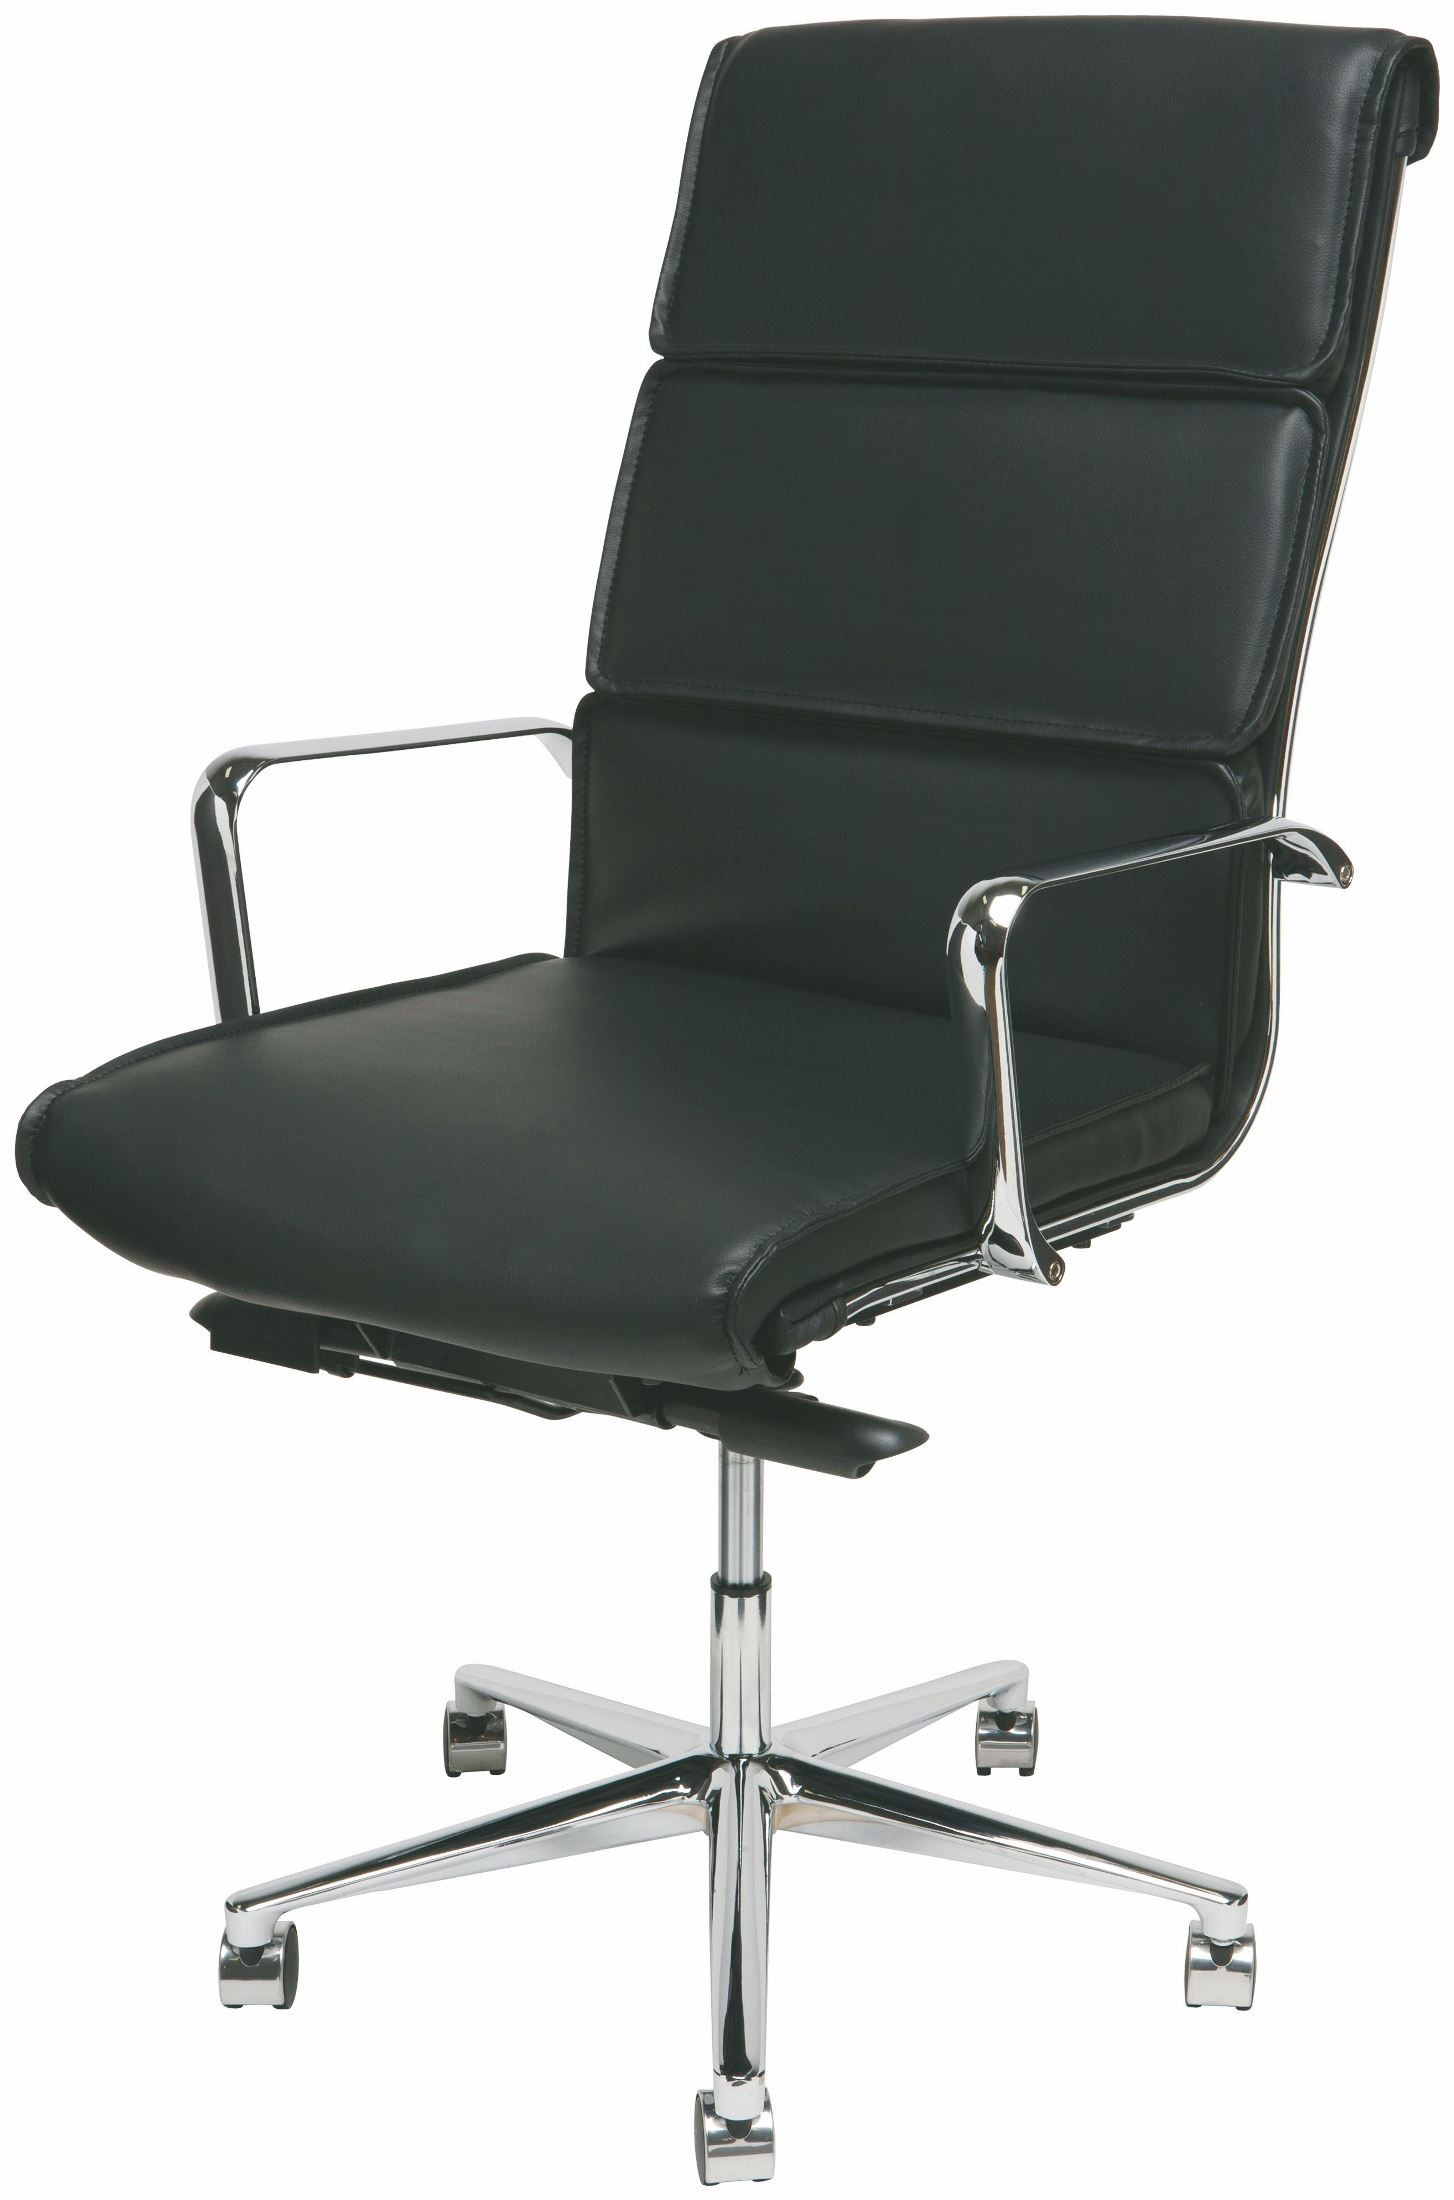 Lucia Black and Silver Metal High Back Office Chair from